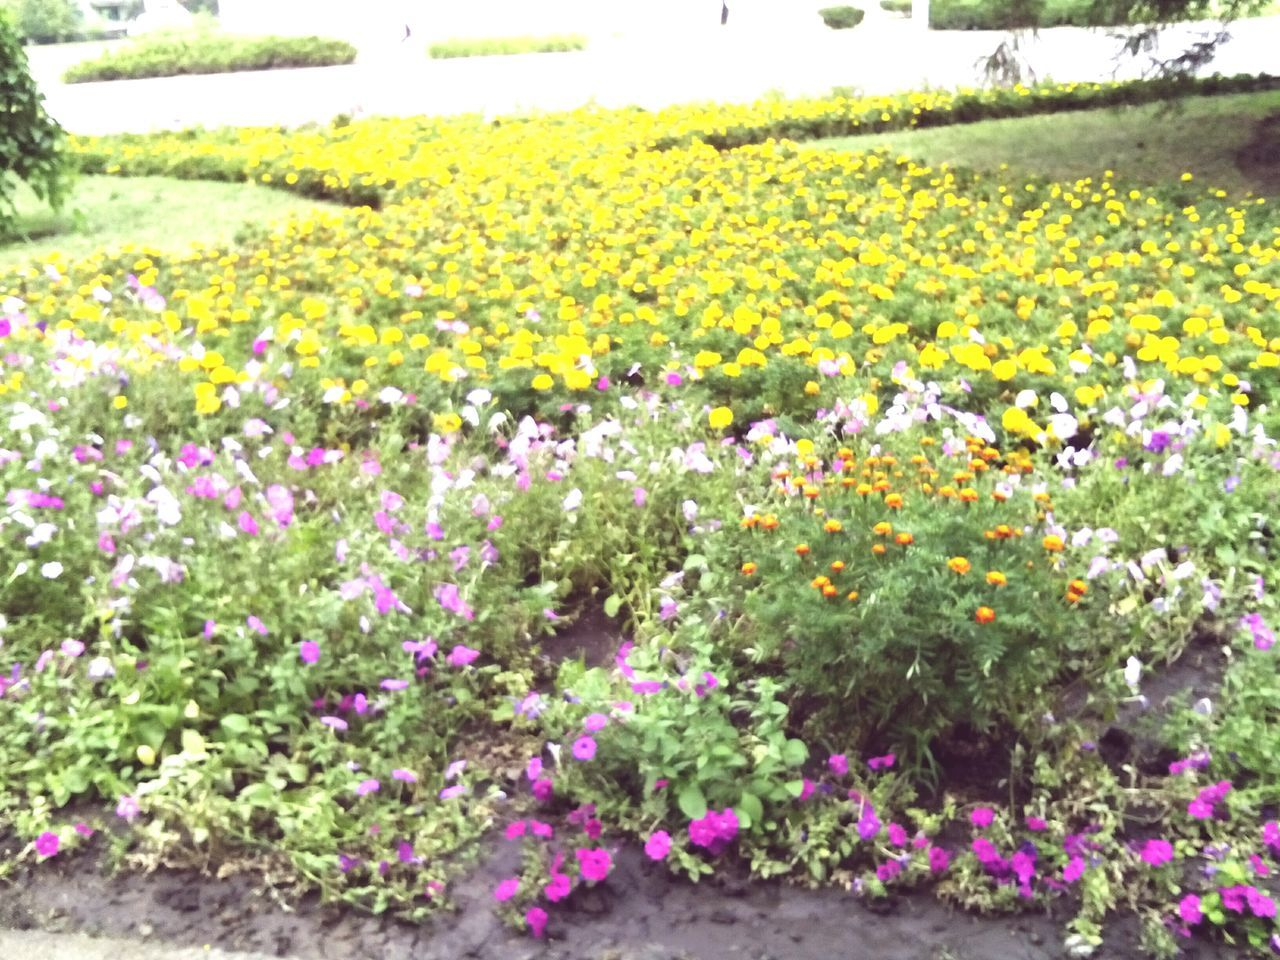 flower, plant, yellow, growth, nature, beauty in nature, day, no people, fragility, freshness, outdoors, field, blooming, flowerbed